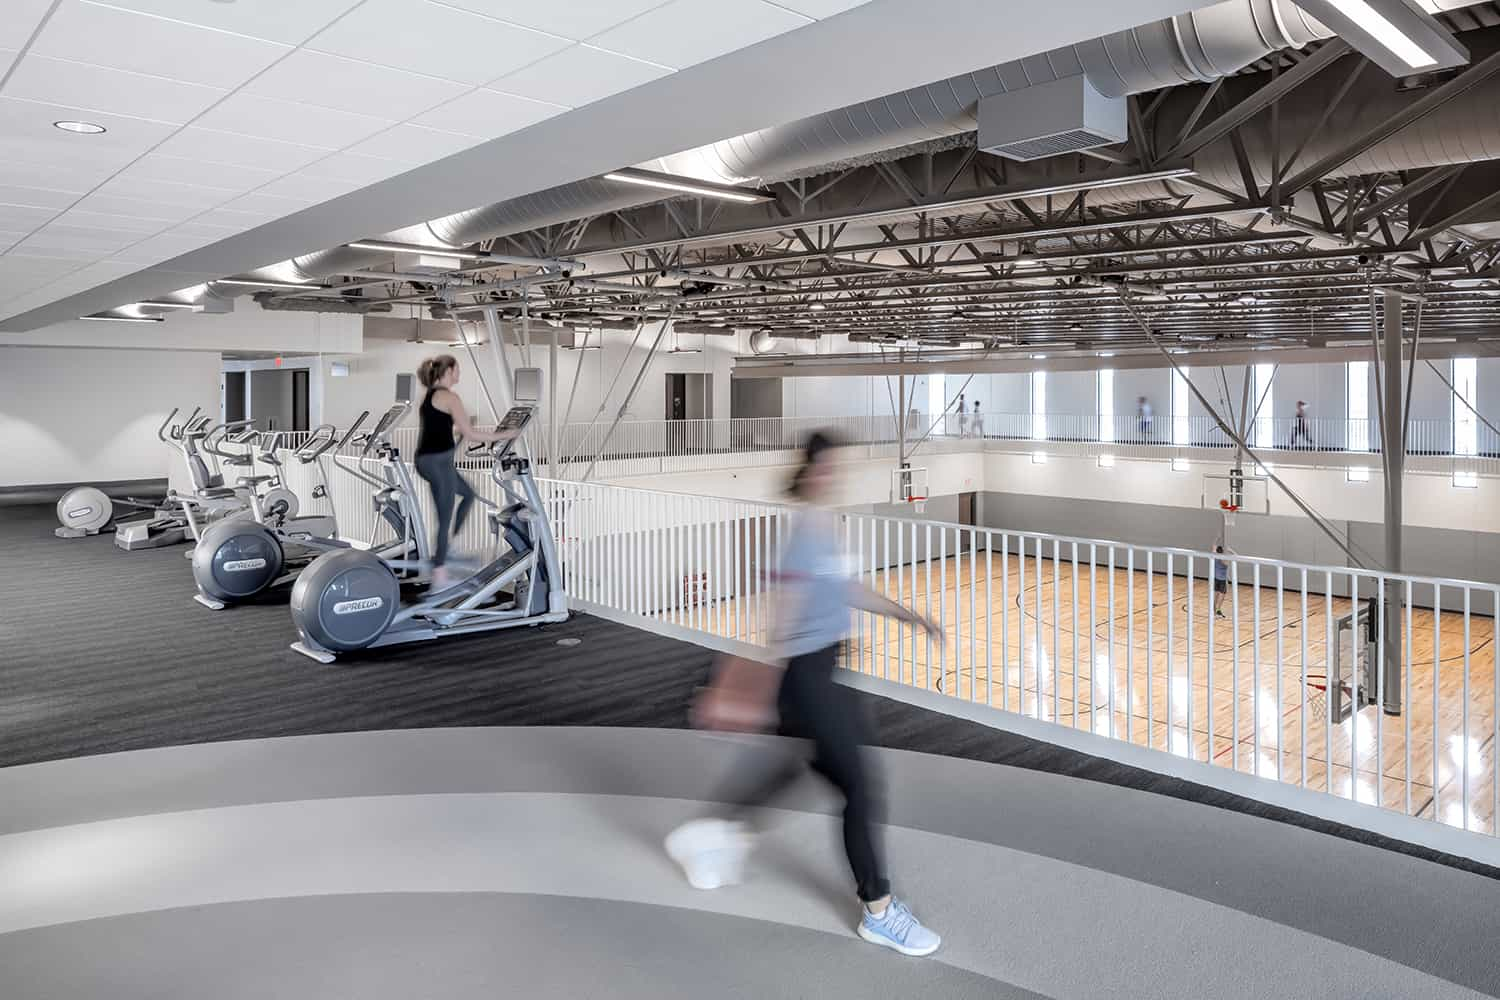 A jogger on the walking track passes an overlook into one of the gymnasiums.